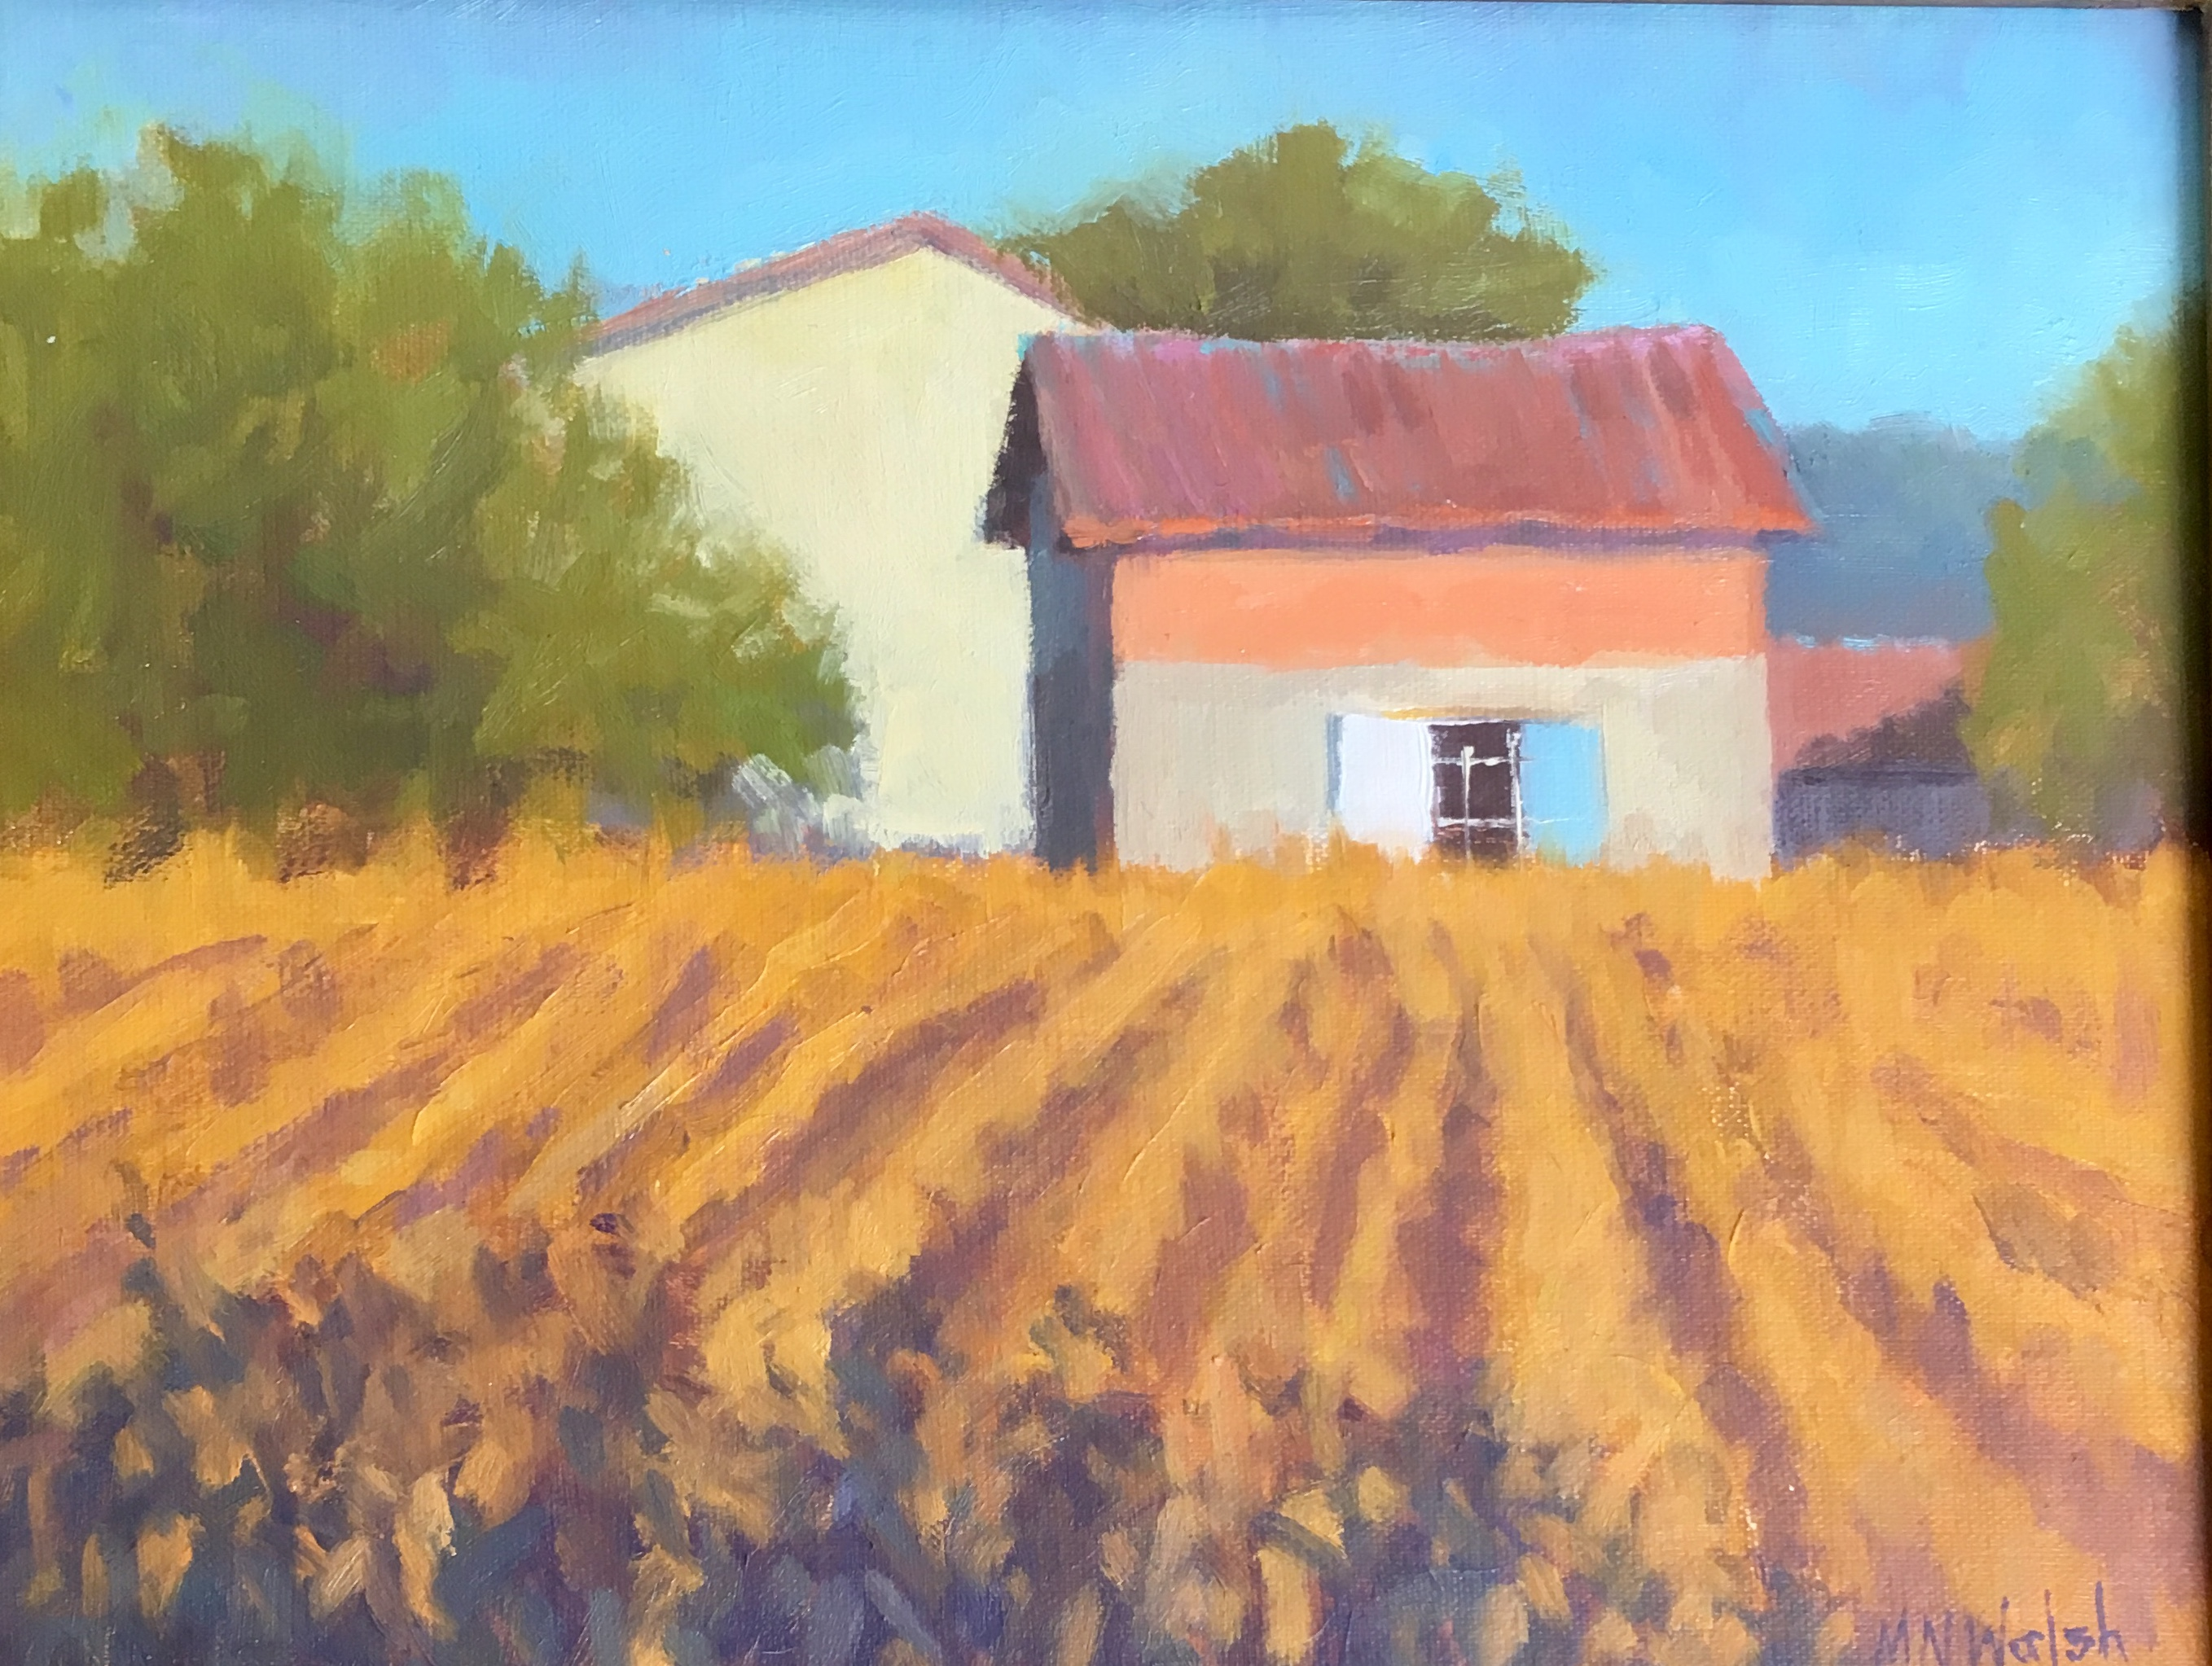 Field of Gold, France-Walsh, oil 8x10 $650